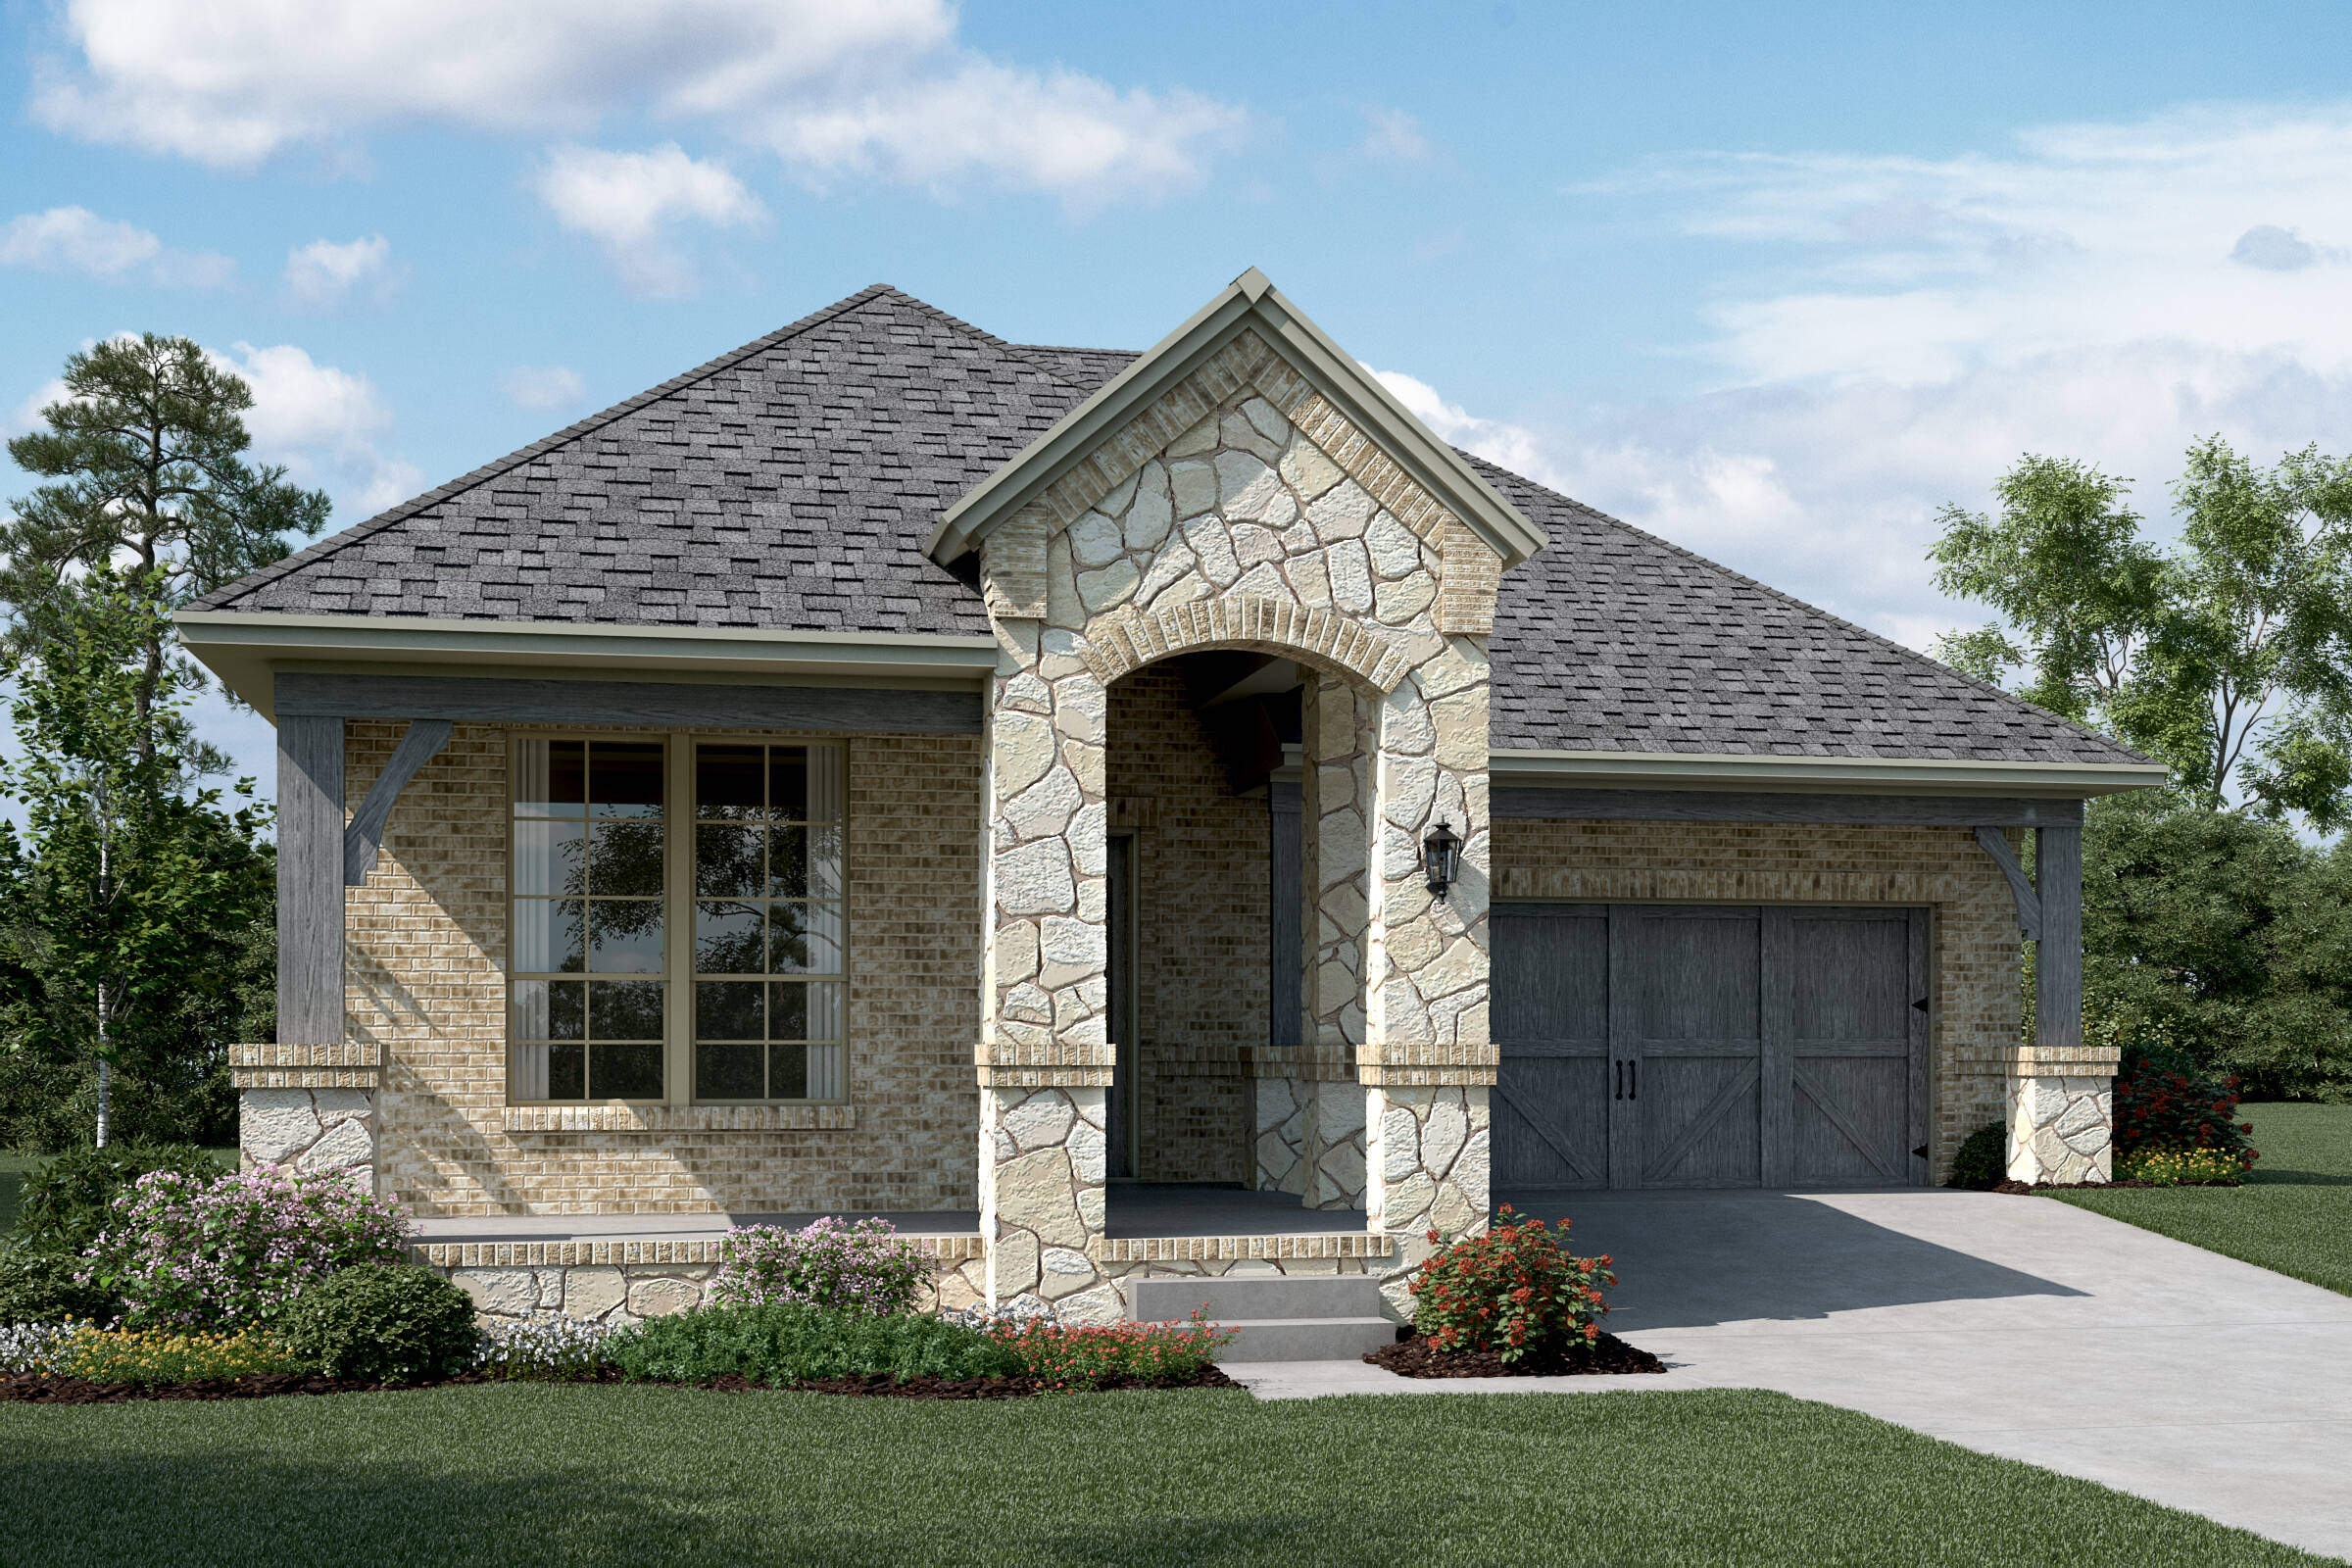 Malibu C Stone new homes dallas tx